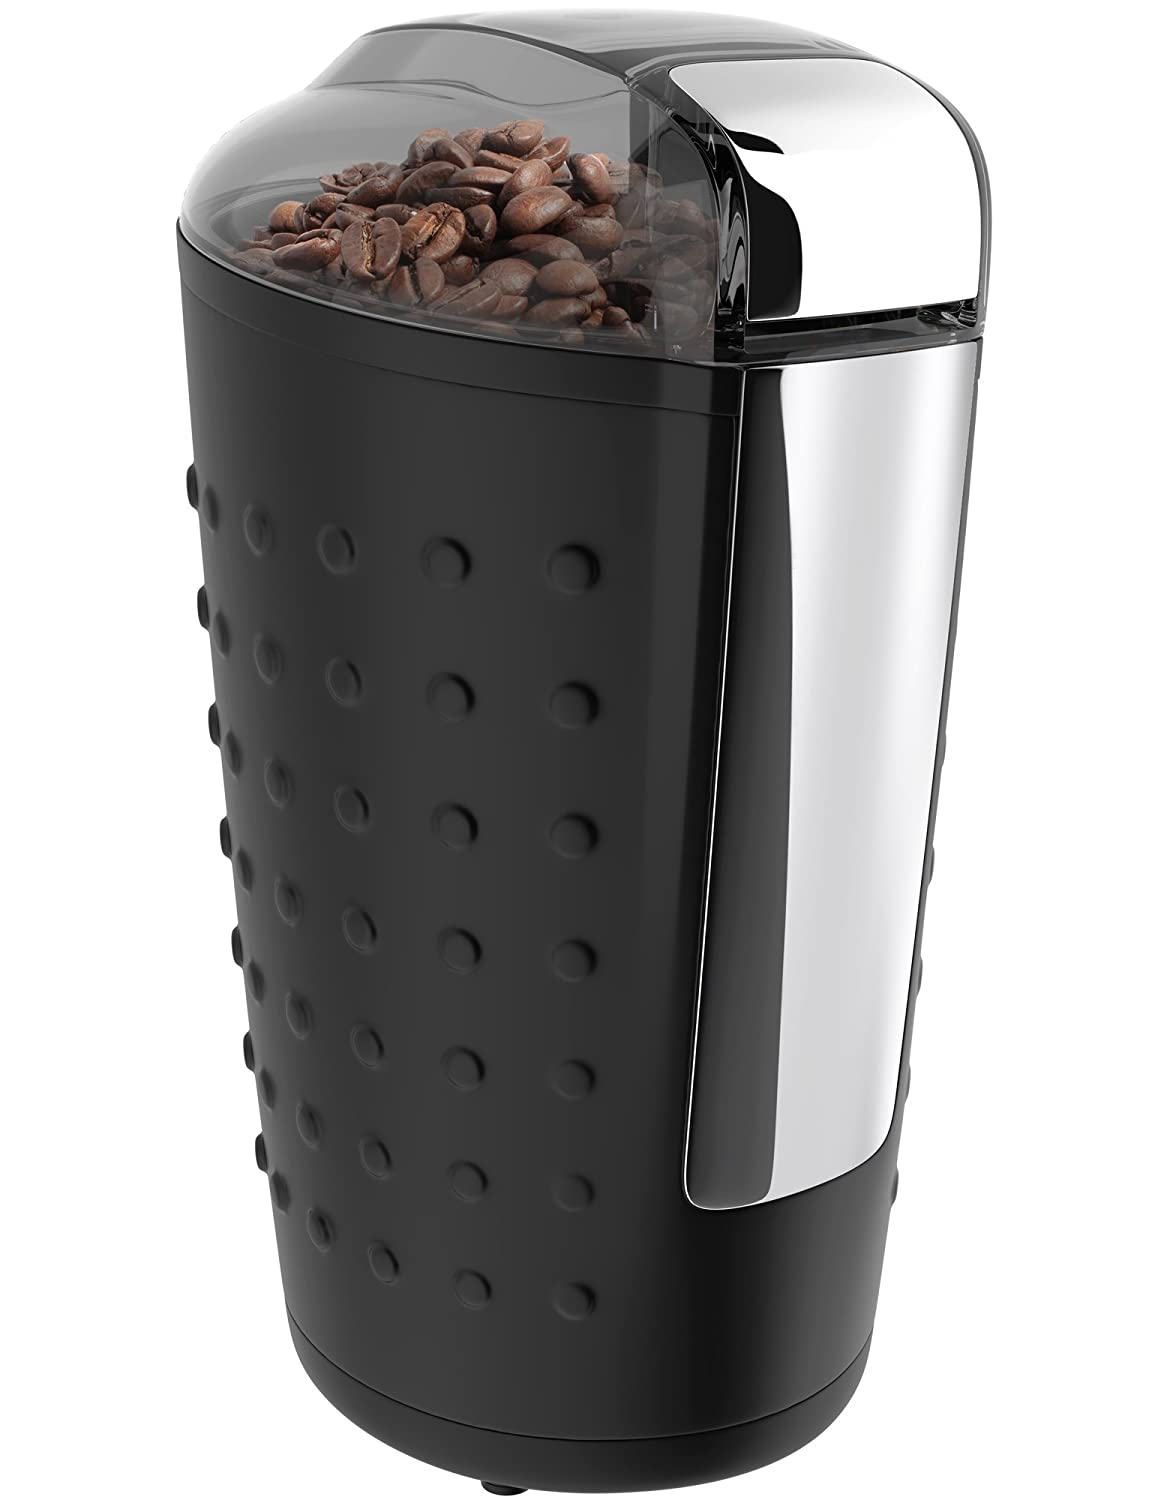 Vremi Electric Coffee Grinder - Portable Coffee Bean Grinder with Easy Touch Settings Stainless Steel Blades & 150W Power Motor - Grinds Coarse Fine Ground Beans for 12 to 14 Cups of Coffees - Black